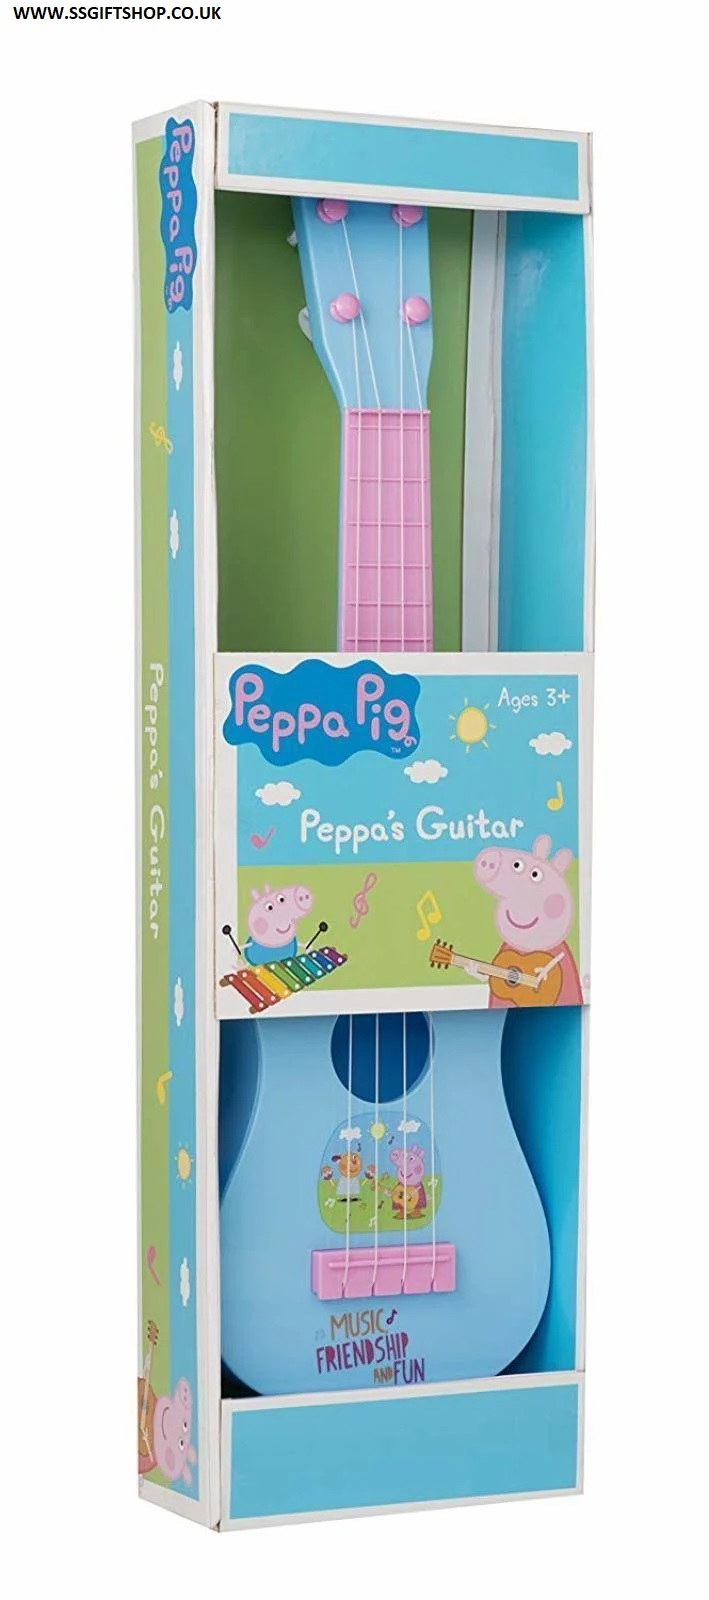 Peppa Pig Acoustic Guitar